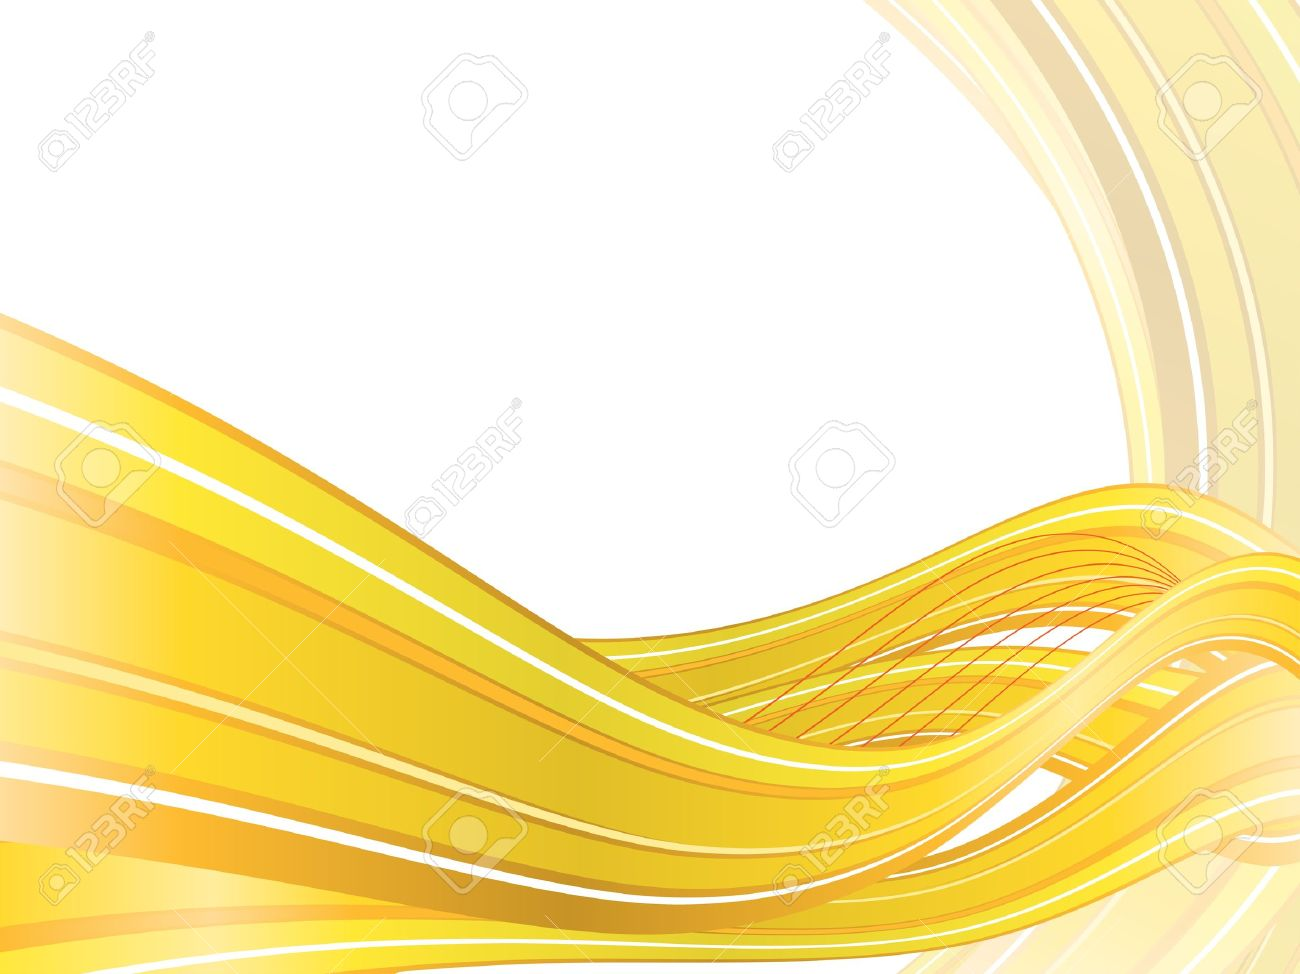 Abstract Vector Background With Yellow Waves Eps10 Royalty Free ... for Yellow Vector Graphics Design Background  570bof